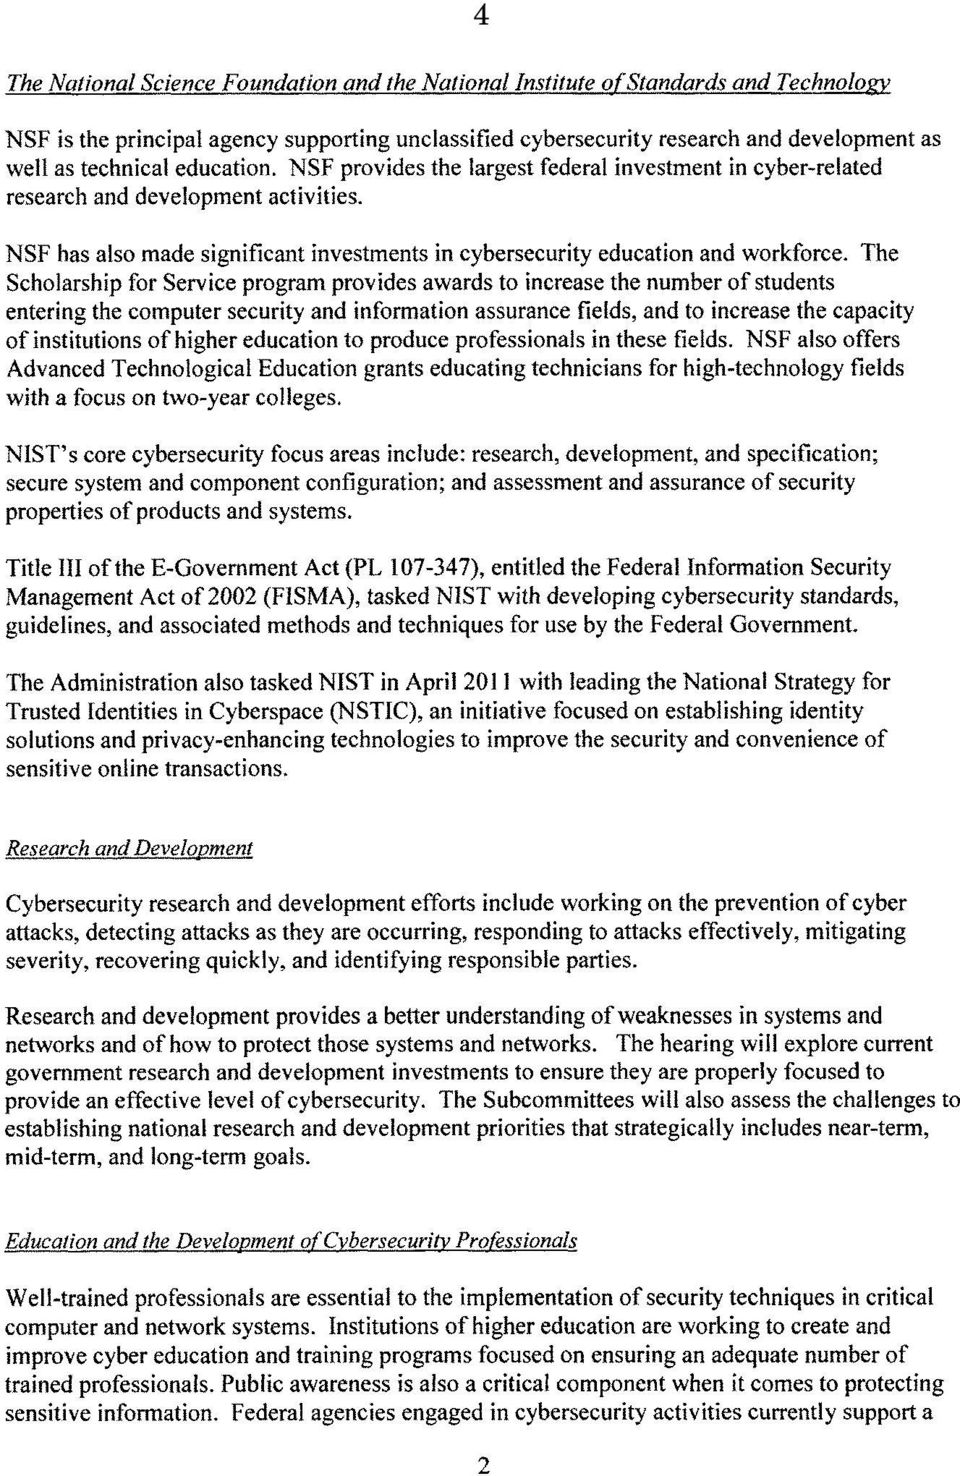 NSF has also made significant investments in cybersecurity education and workforce.